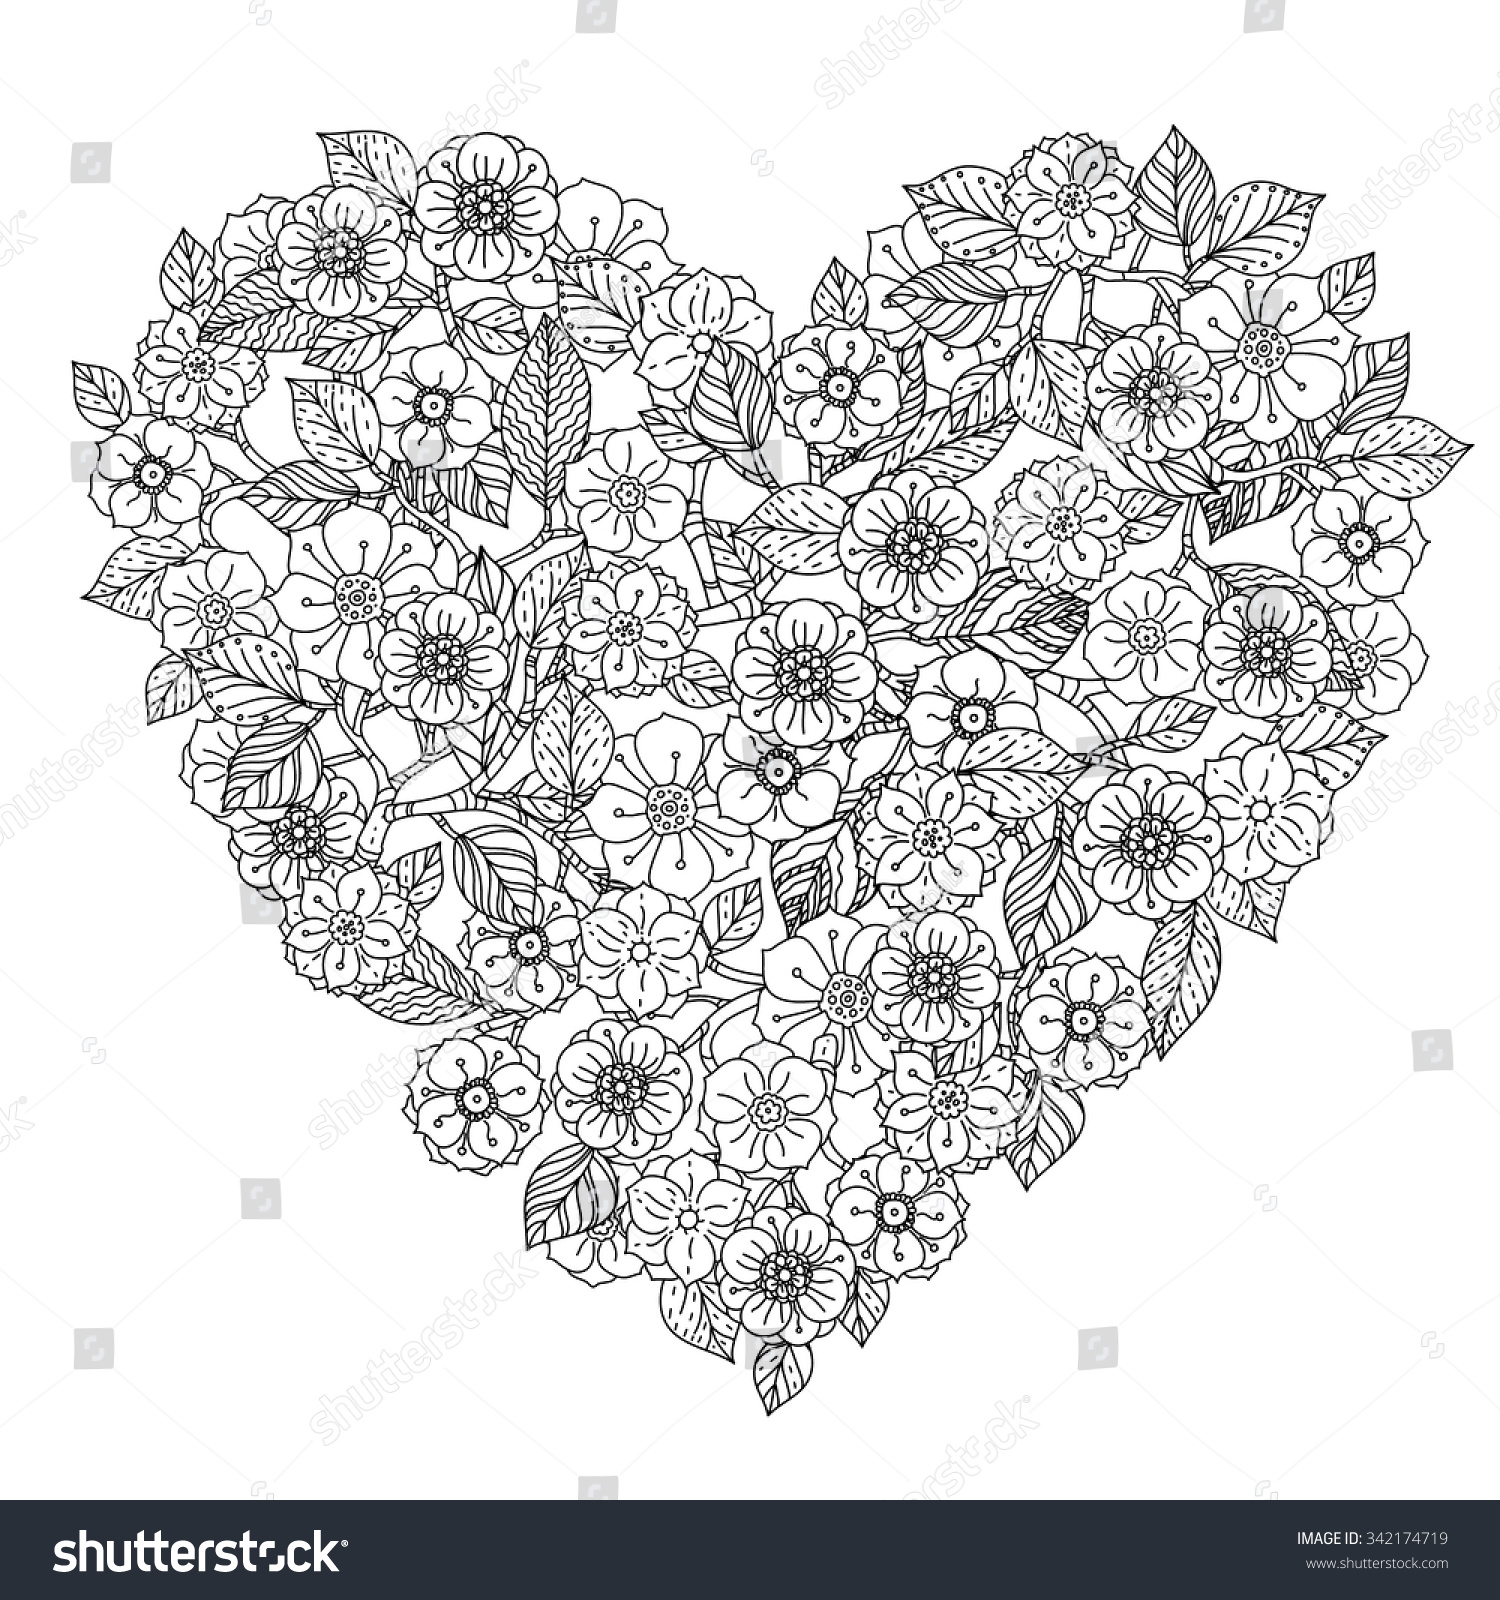 Best mandala coloring pages - Hand Drawing Zentangle Element Black And White Flower Mandala Style Vector Illustration